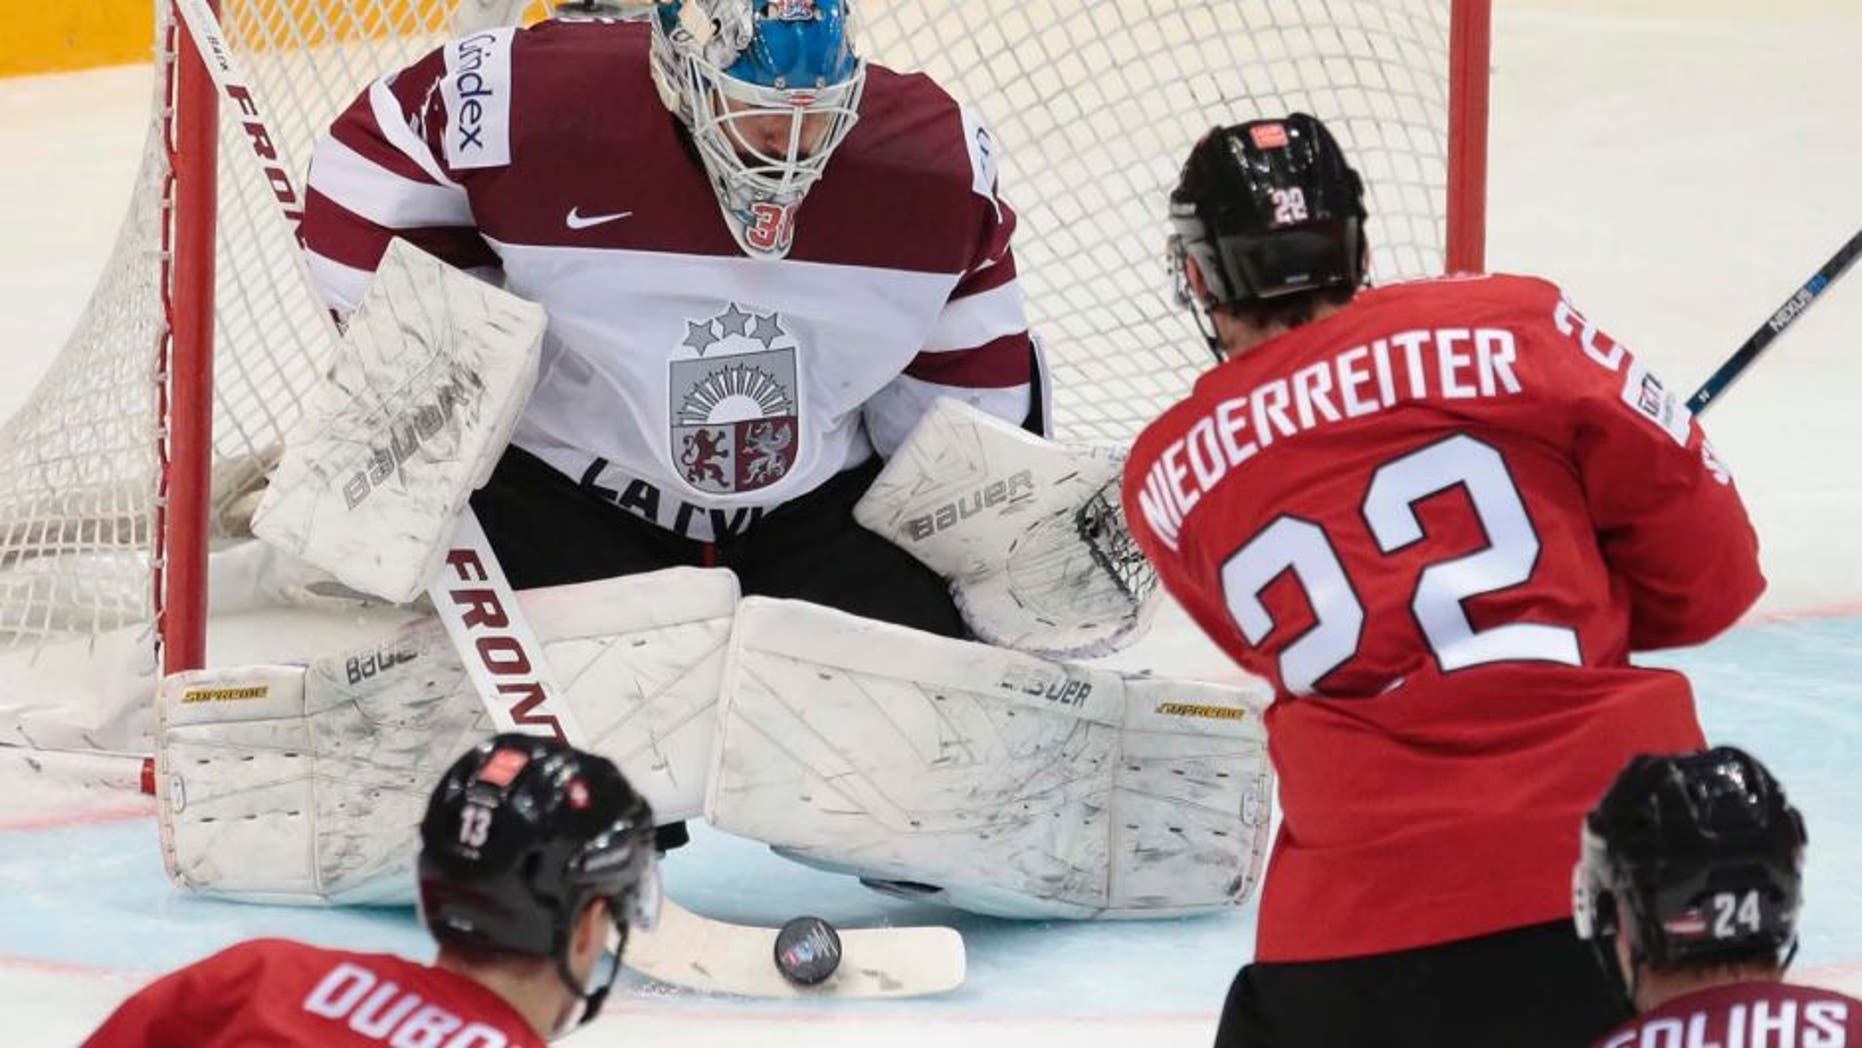 Wednesday, May 11, 2016: Switzerland's Nino Niederreiter scores against Latvia's goalie Edgars Masalskis during the Ice Hockey World Championships Group A match between Switzerland and Latvia, in Moscow, Russia.